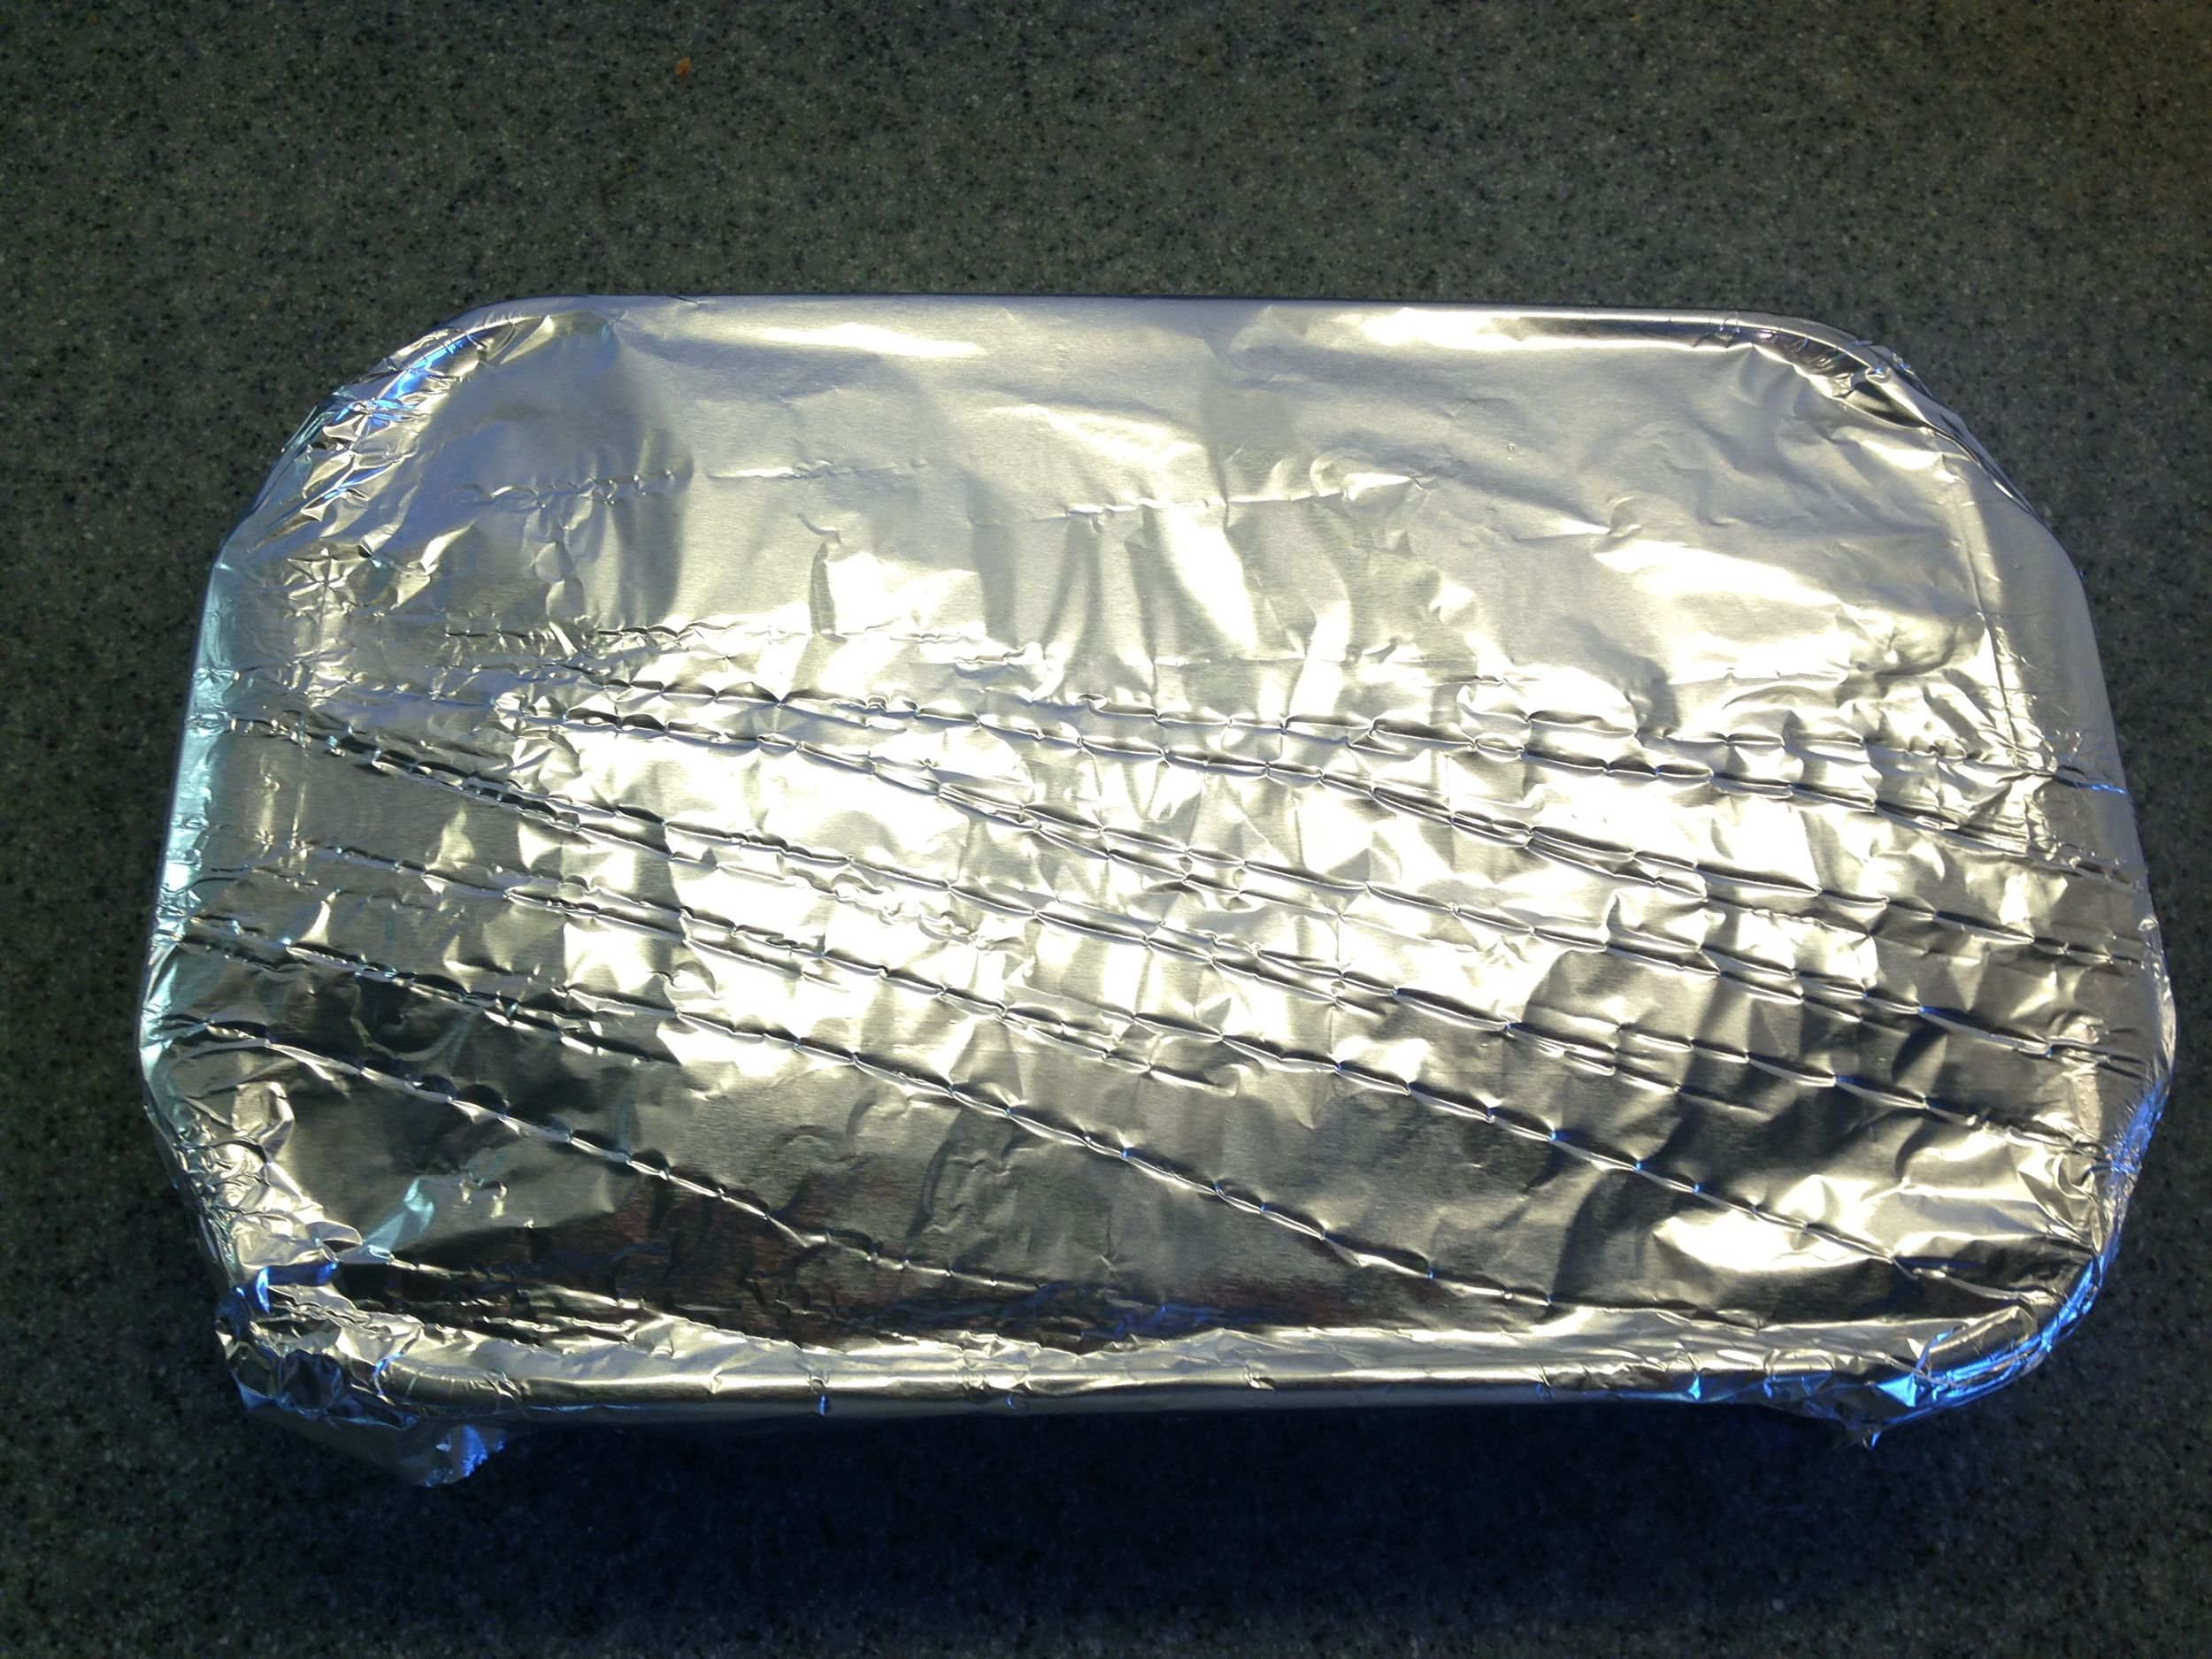 Wrap tightly with foil. The point here is to steam the meat.